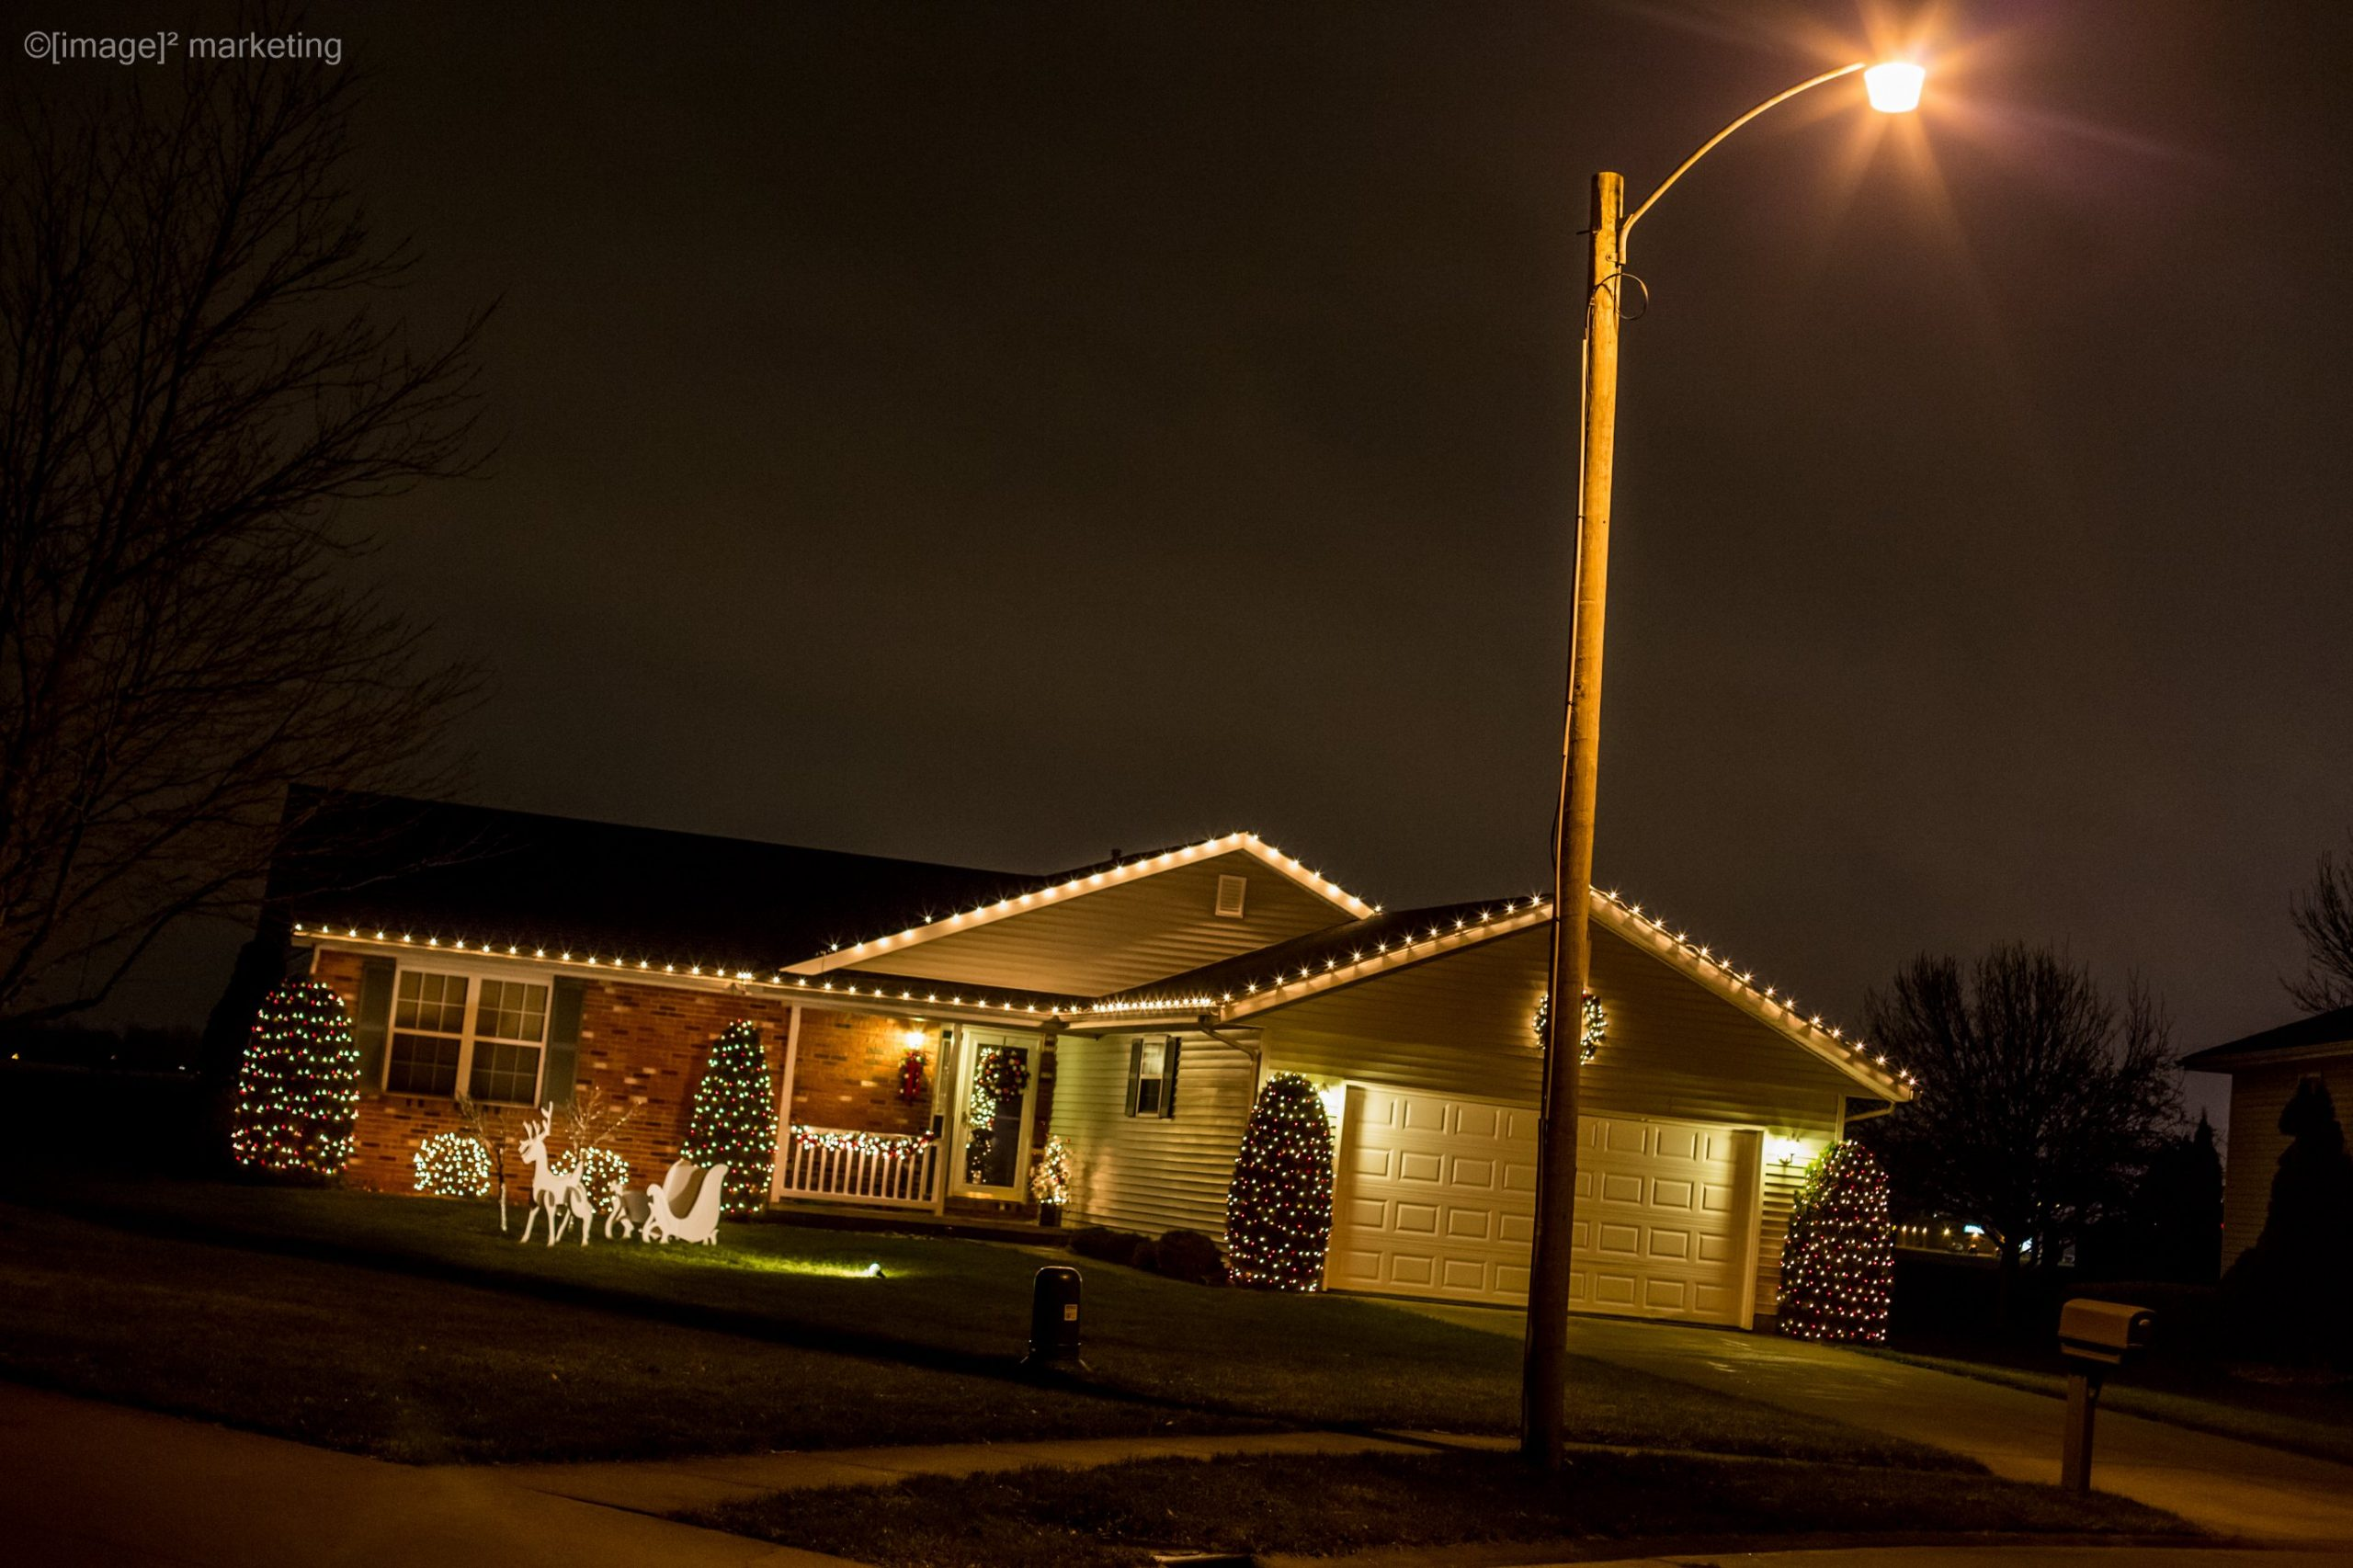 Holiday Lights and Festive Sights: Time to Vote!